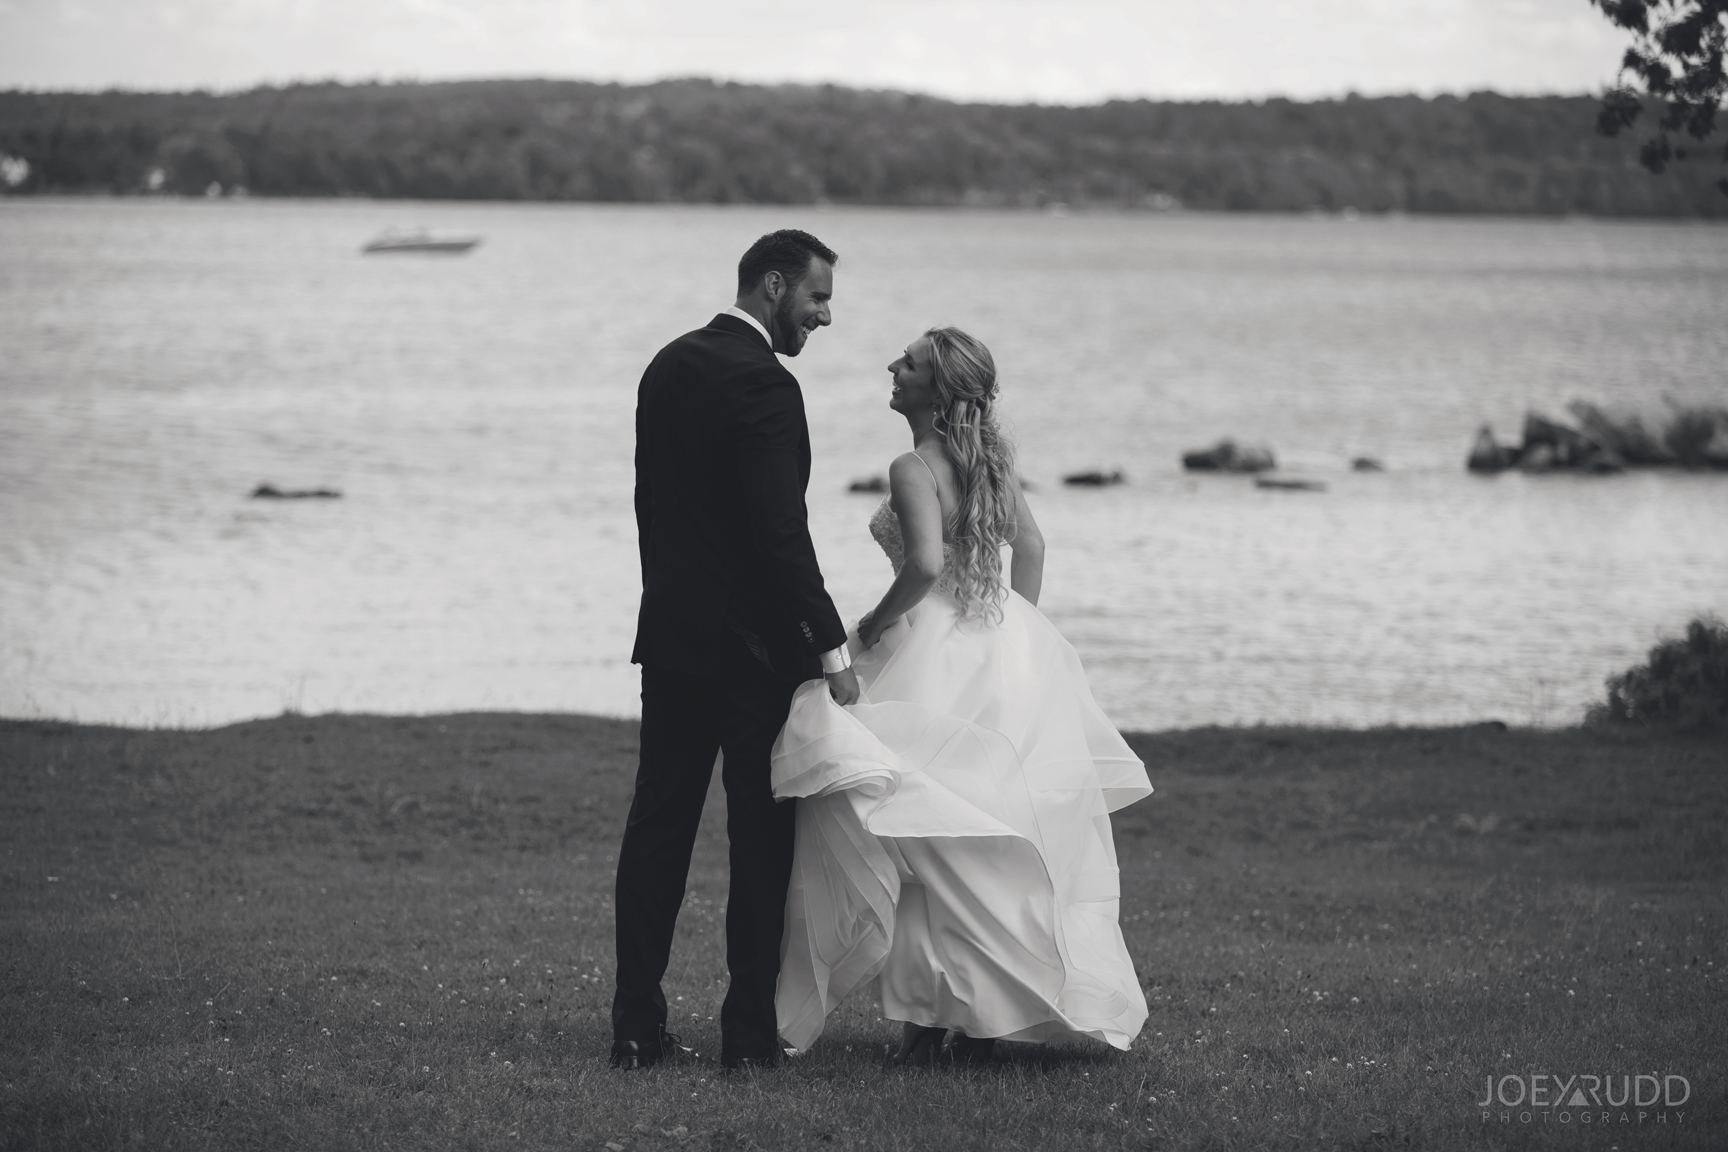 Calabogie Wedding at Barnet Park by Ottawa Wedding Photographer Joey Rudd Photography Romantic Photo